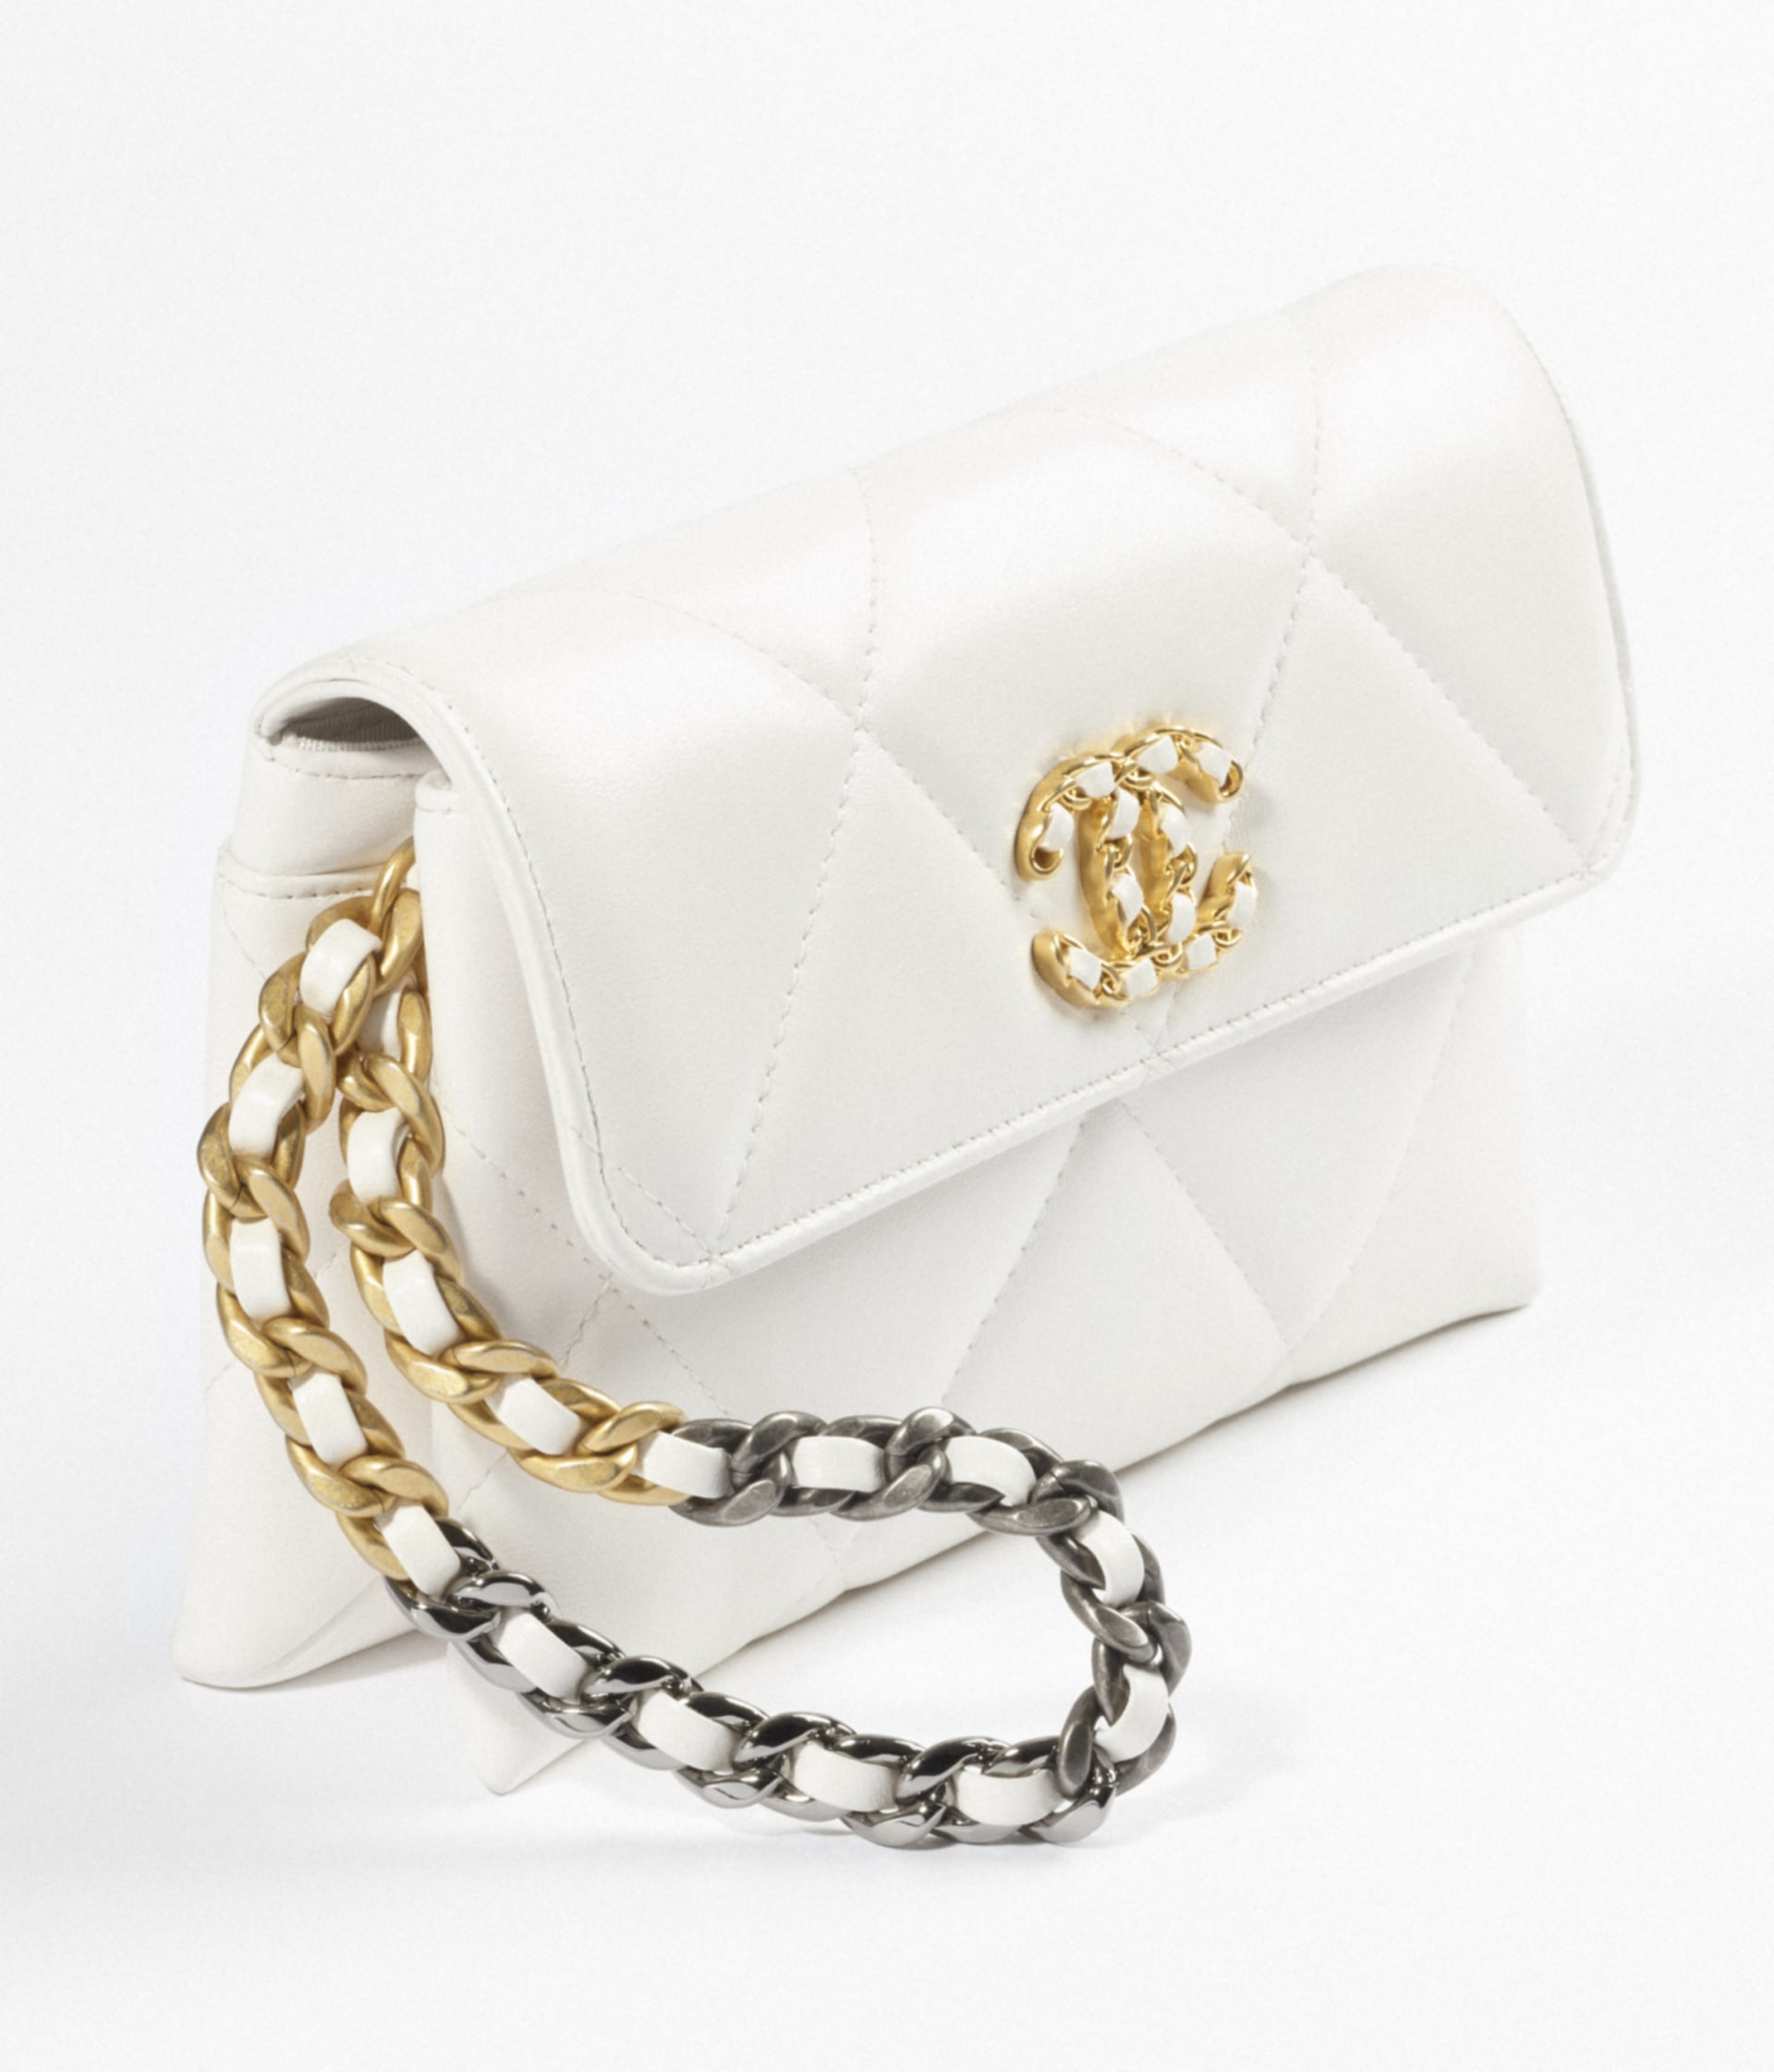 image 3 - CHANEL 19 Pouch with Handle - Lambskin, Gold-Tone, Silver-Tone & Ruthenium-Finish Metal - White